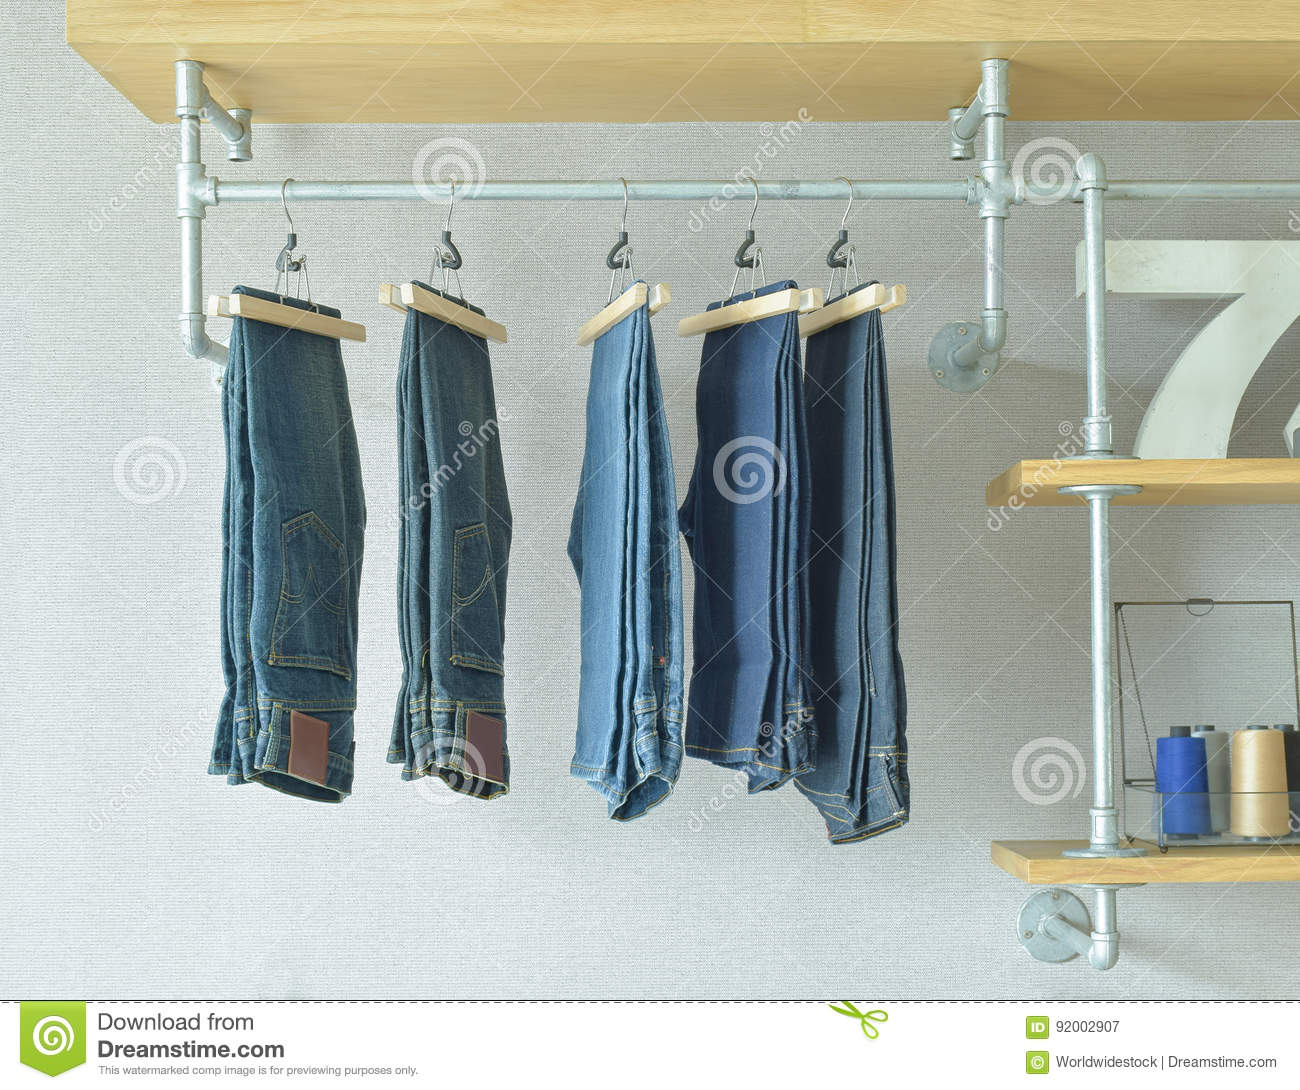 Astounding Jeans Hanging In Industrial Style Walk In Closet At Home Download Free Architecture Designs Rallybritishbridgeorg